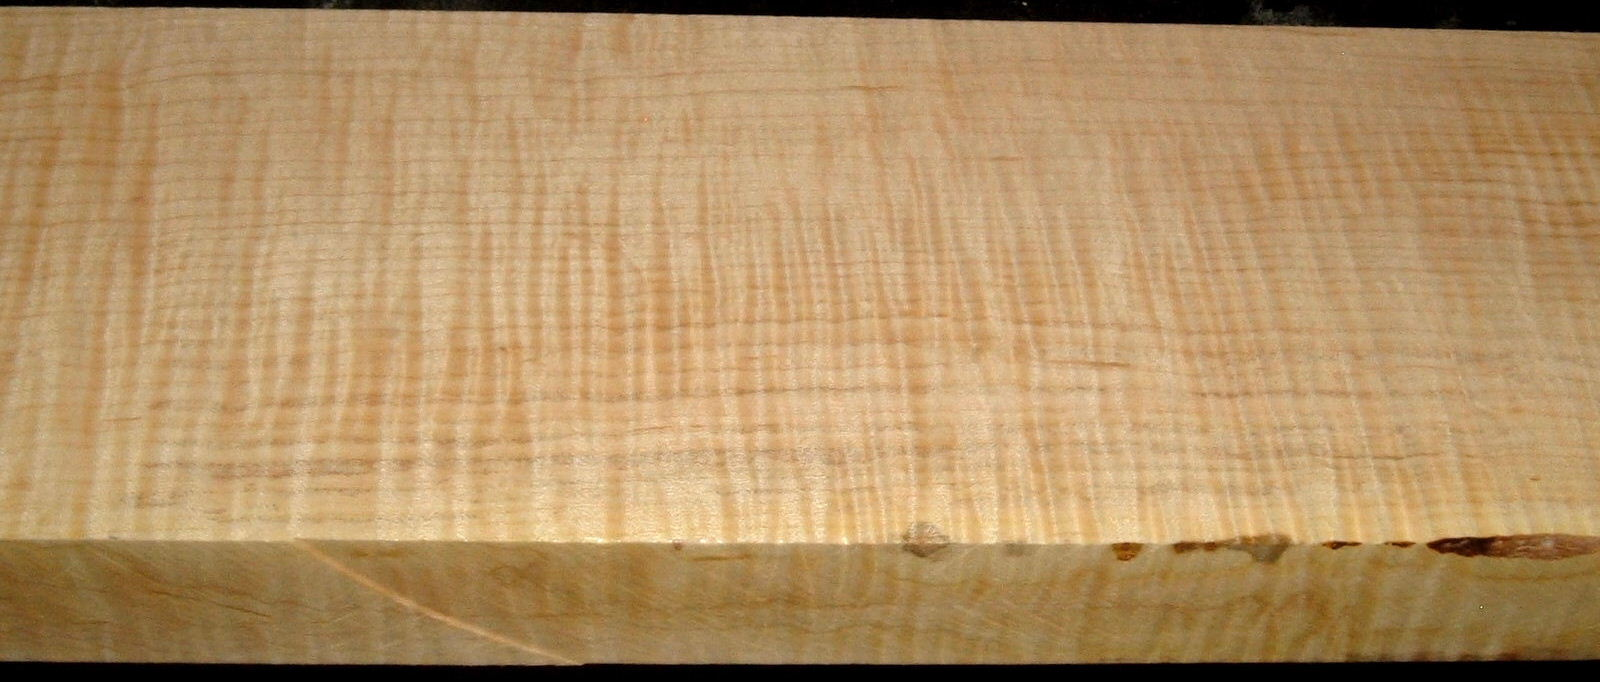 QS2001-5, 1-1/2x5x31, Quartersawn Curly Maple